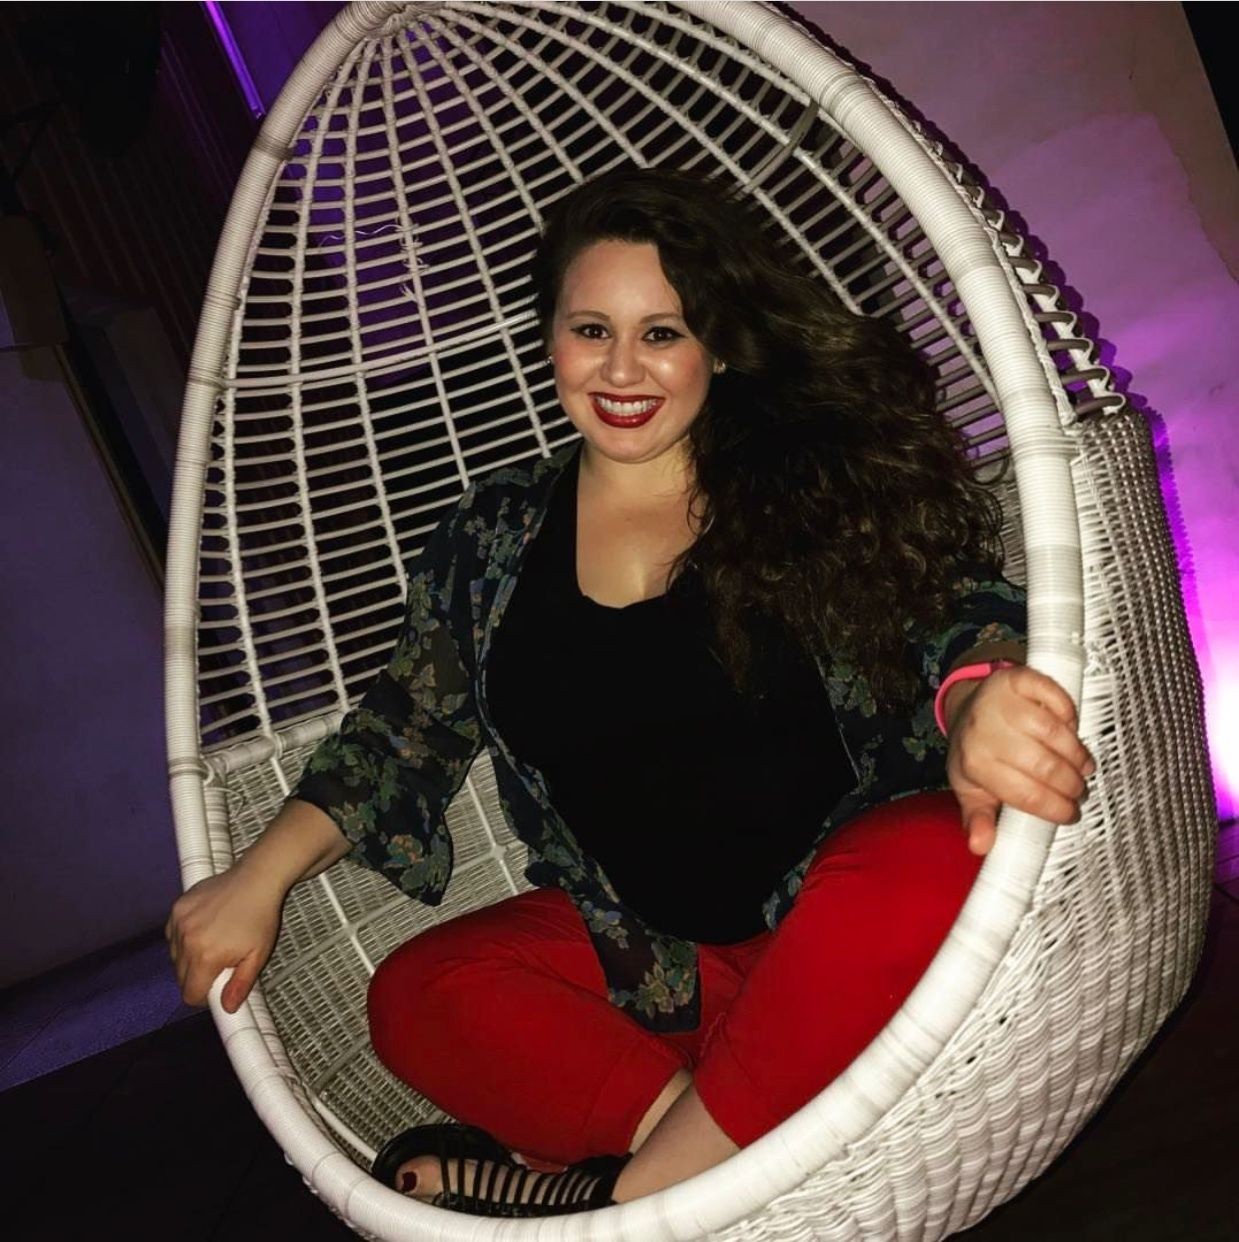 hispanic singles in plano Amolatinacom is an international dating site that brings you exciting introductions and direct communication with latin members.